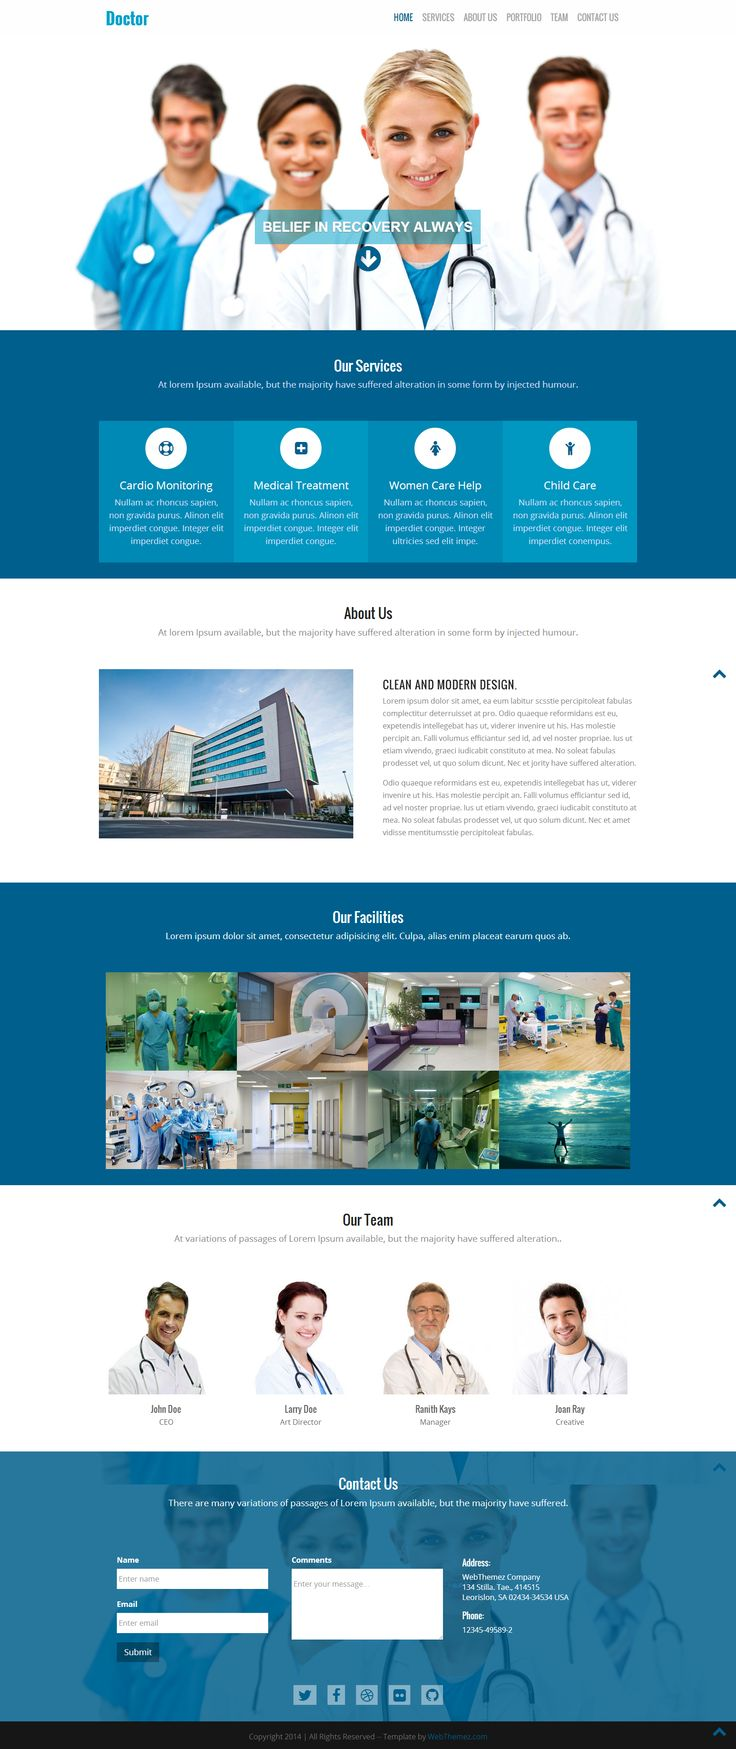 #Bootstrap #FreeResponsiveWebsites #ResponsiveTemplates #HTML5Templates #FreeWeb #Responsive #webthemez #mobileWebsite #freeWebsite #HTML5 #Doctor is the best HTML5 theme designed for all the Doctors, #Dentists and #Health #Consultants out there that need a professional yet modern looking website. This HTML template comes packed with medical features and enables them to interact easier.